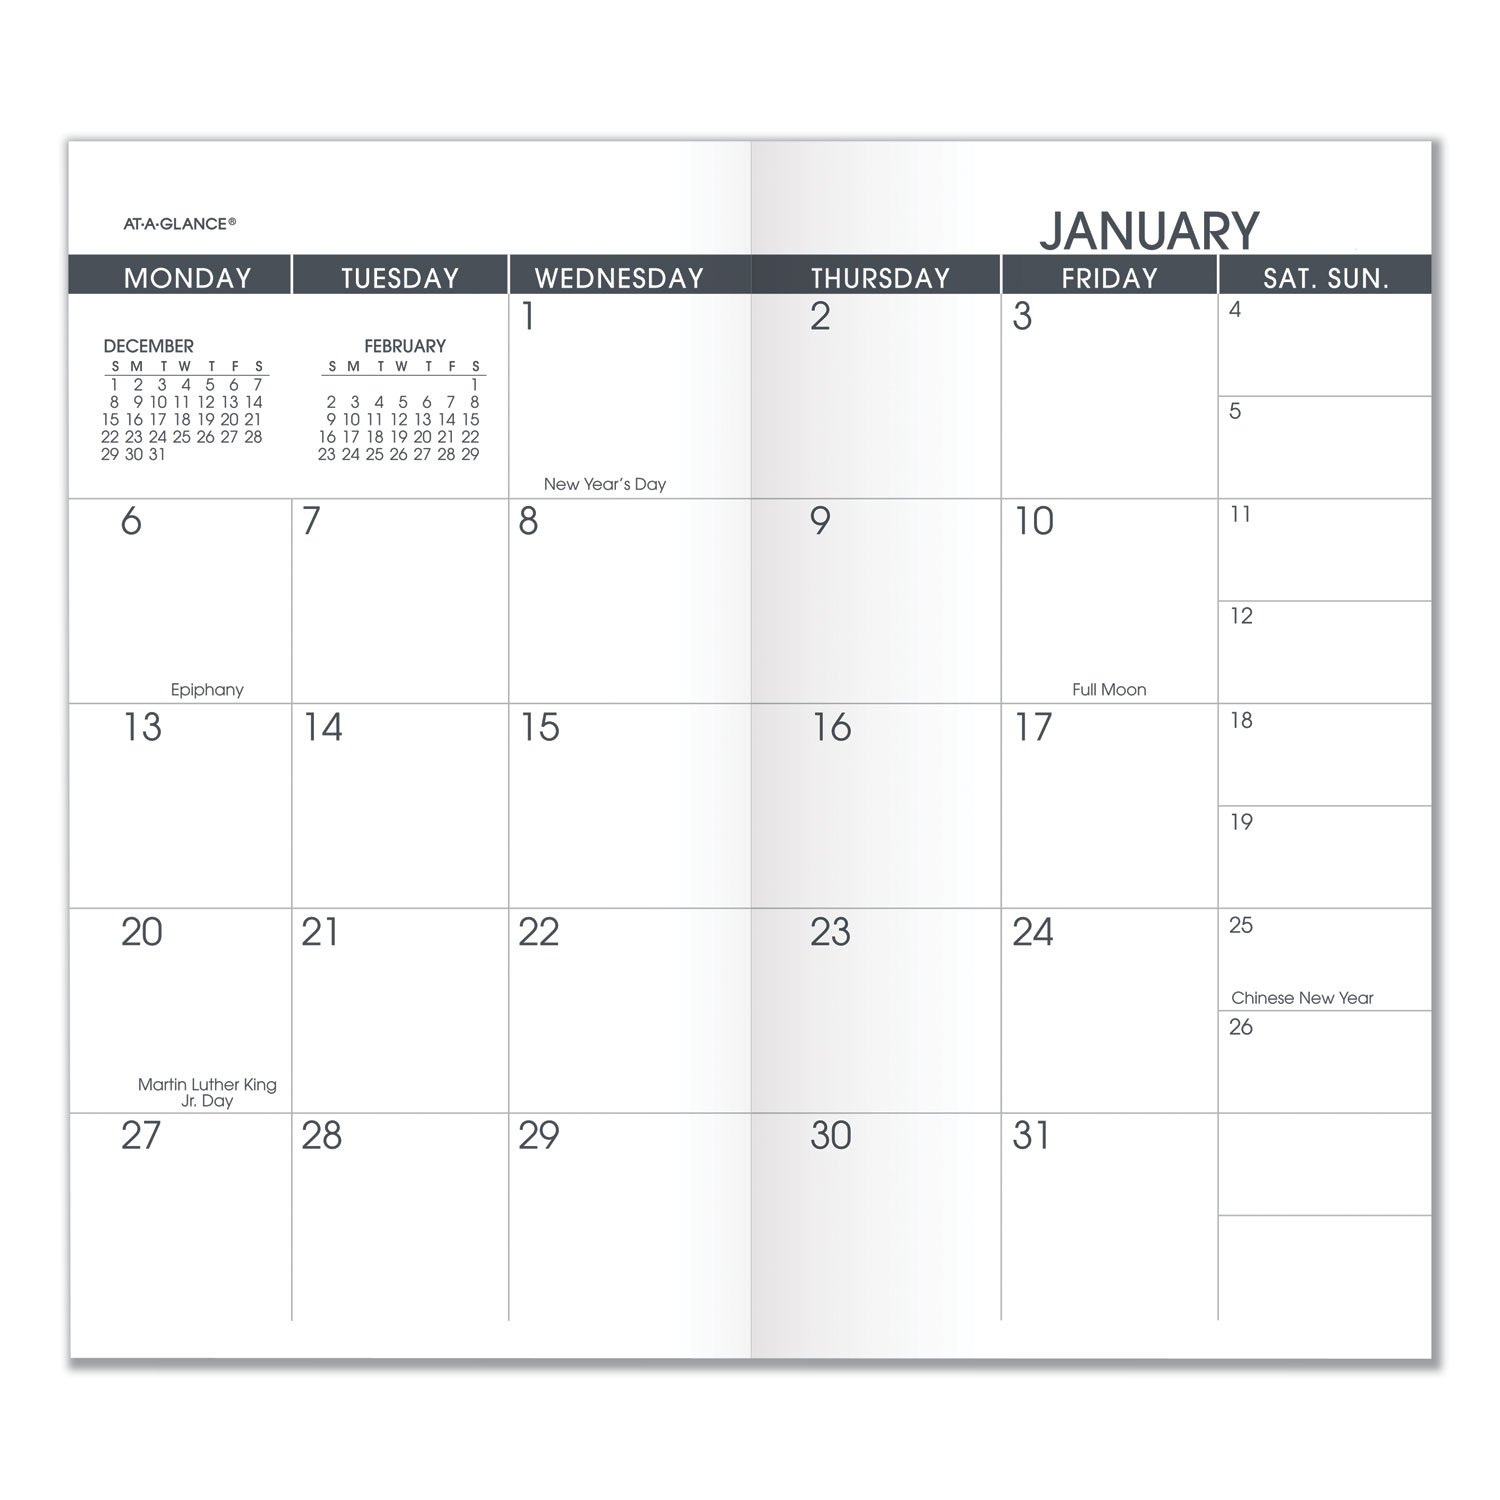 Aag7090610 At-A-Glance Pocket Size Monthly Planner Refill Free Printable Calendars 5 1/2 X 8 1/2